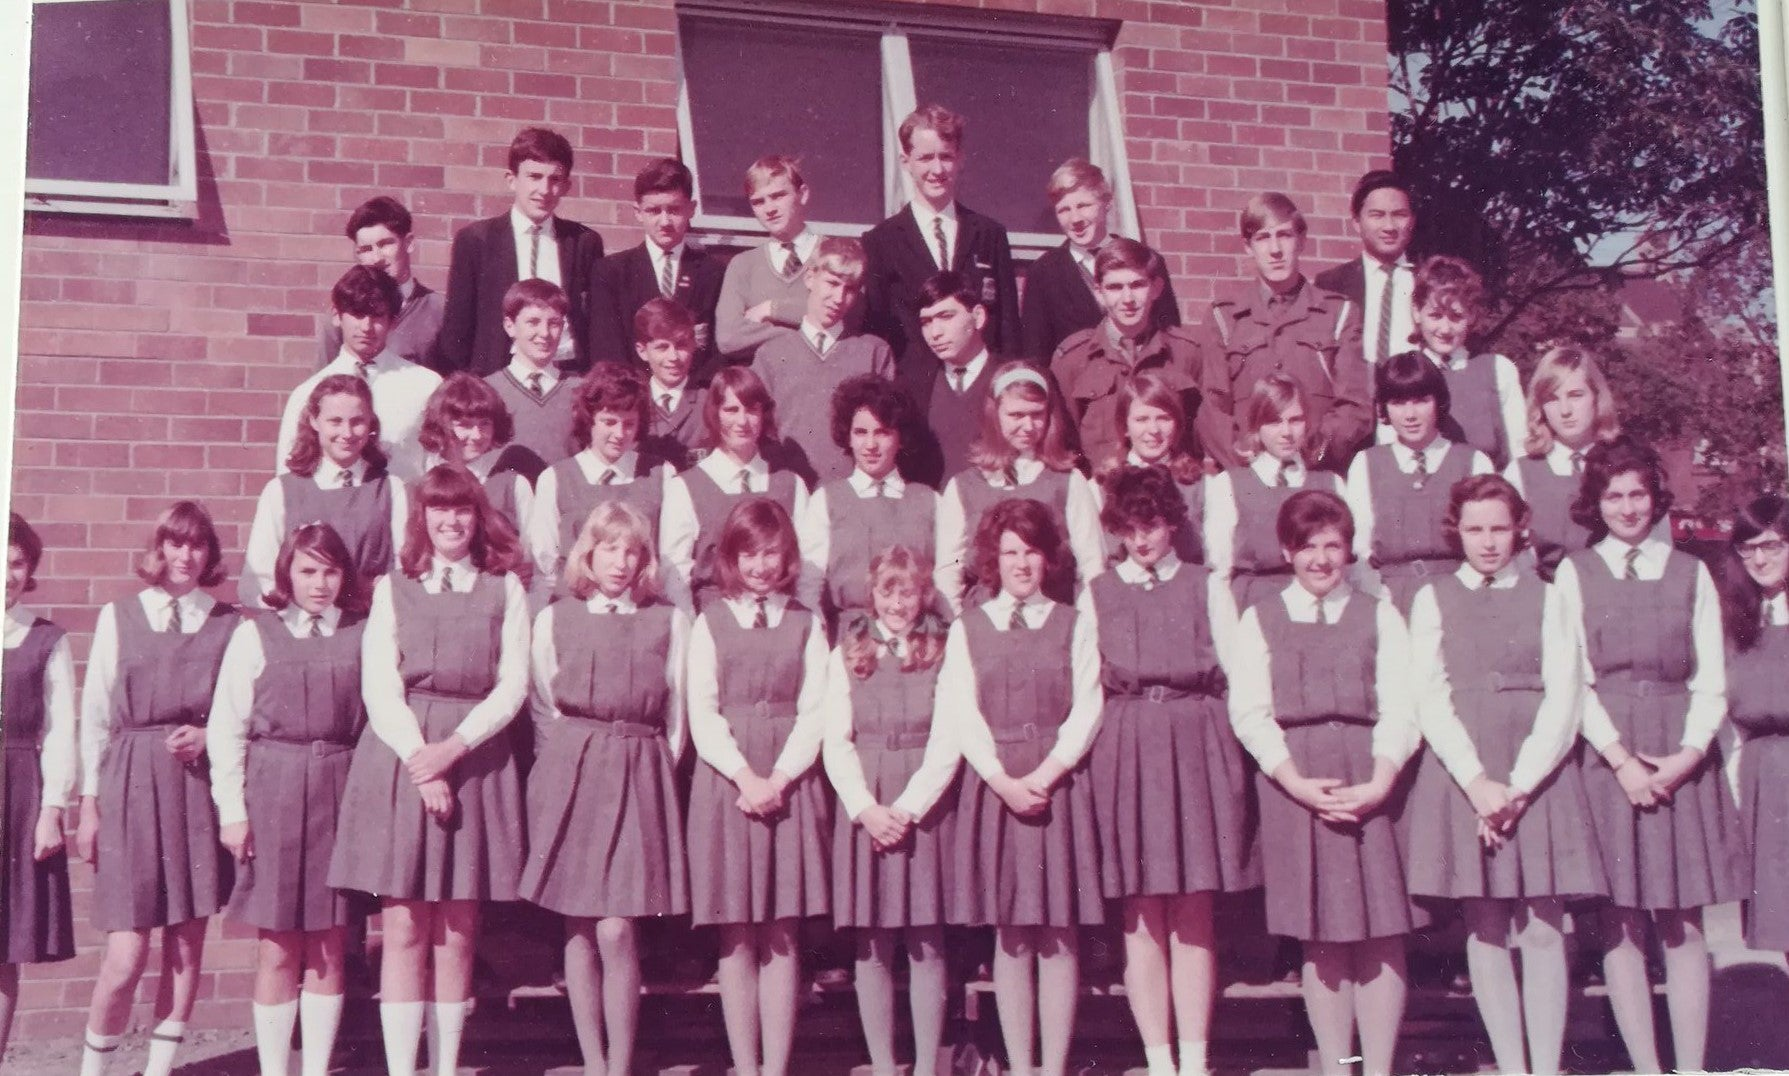 Douglas Lam and his schoolmates from Mosman High School (1965)